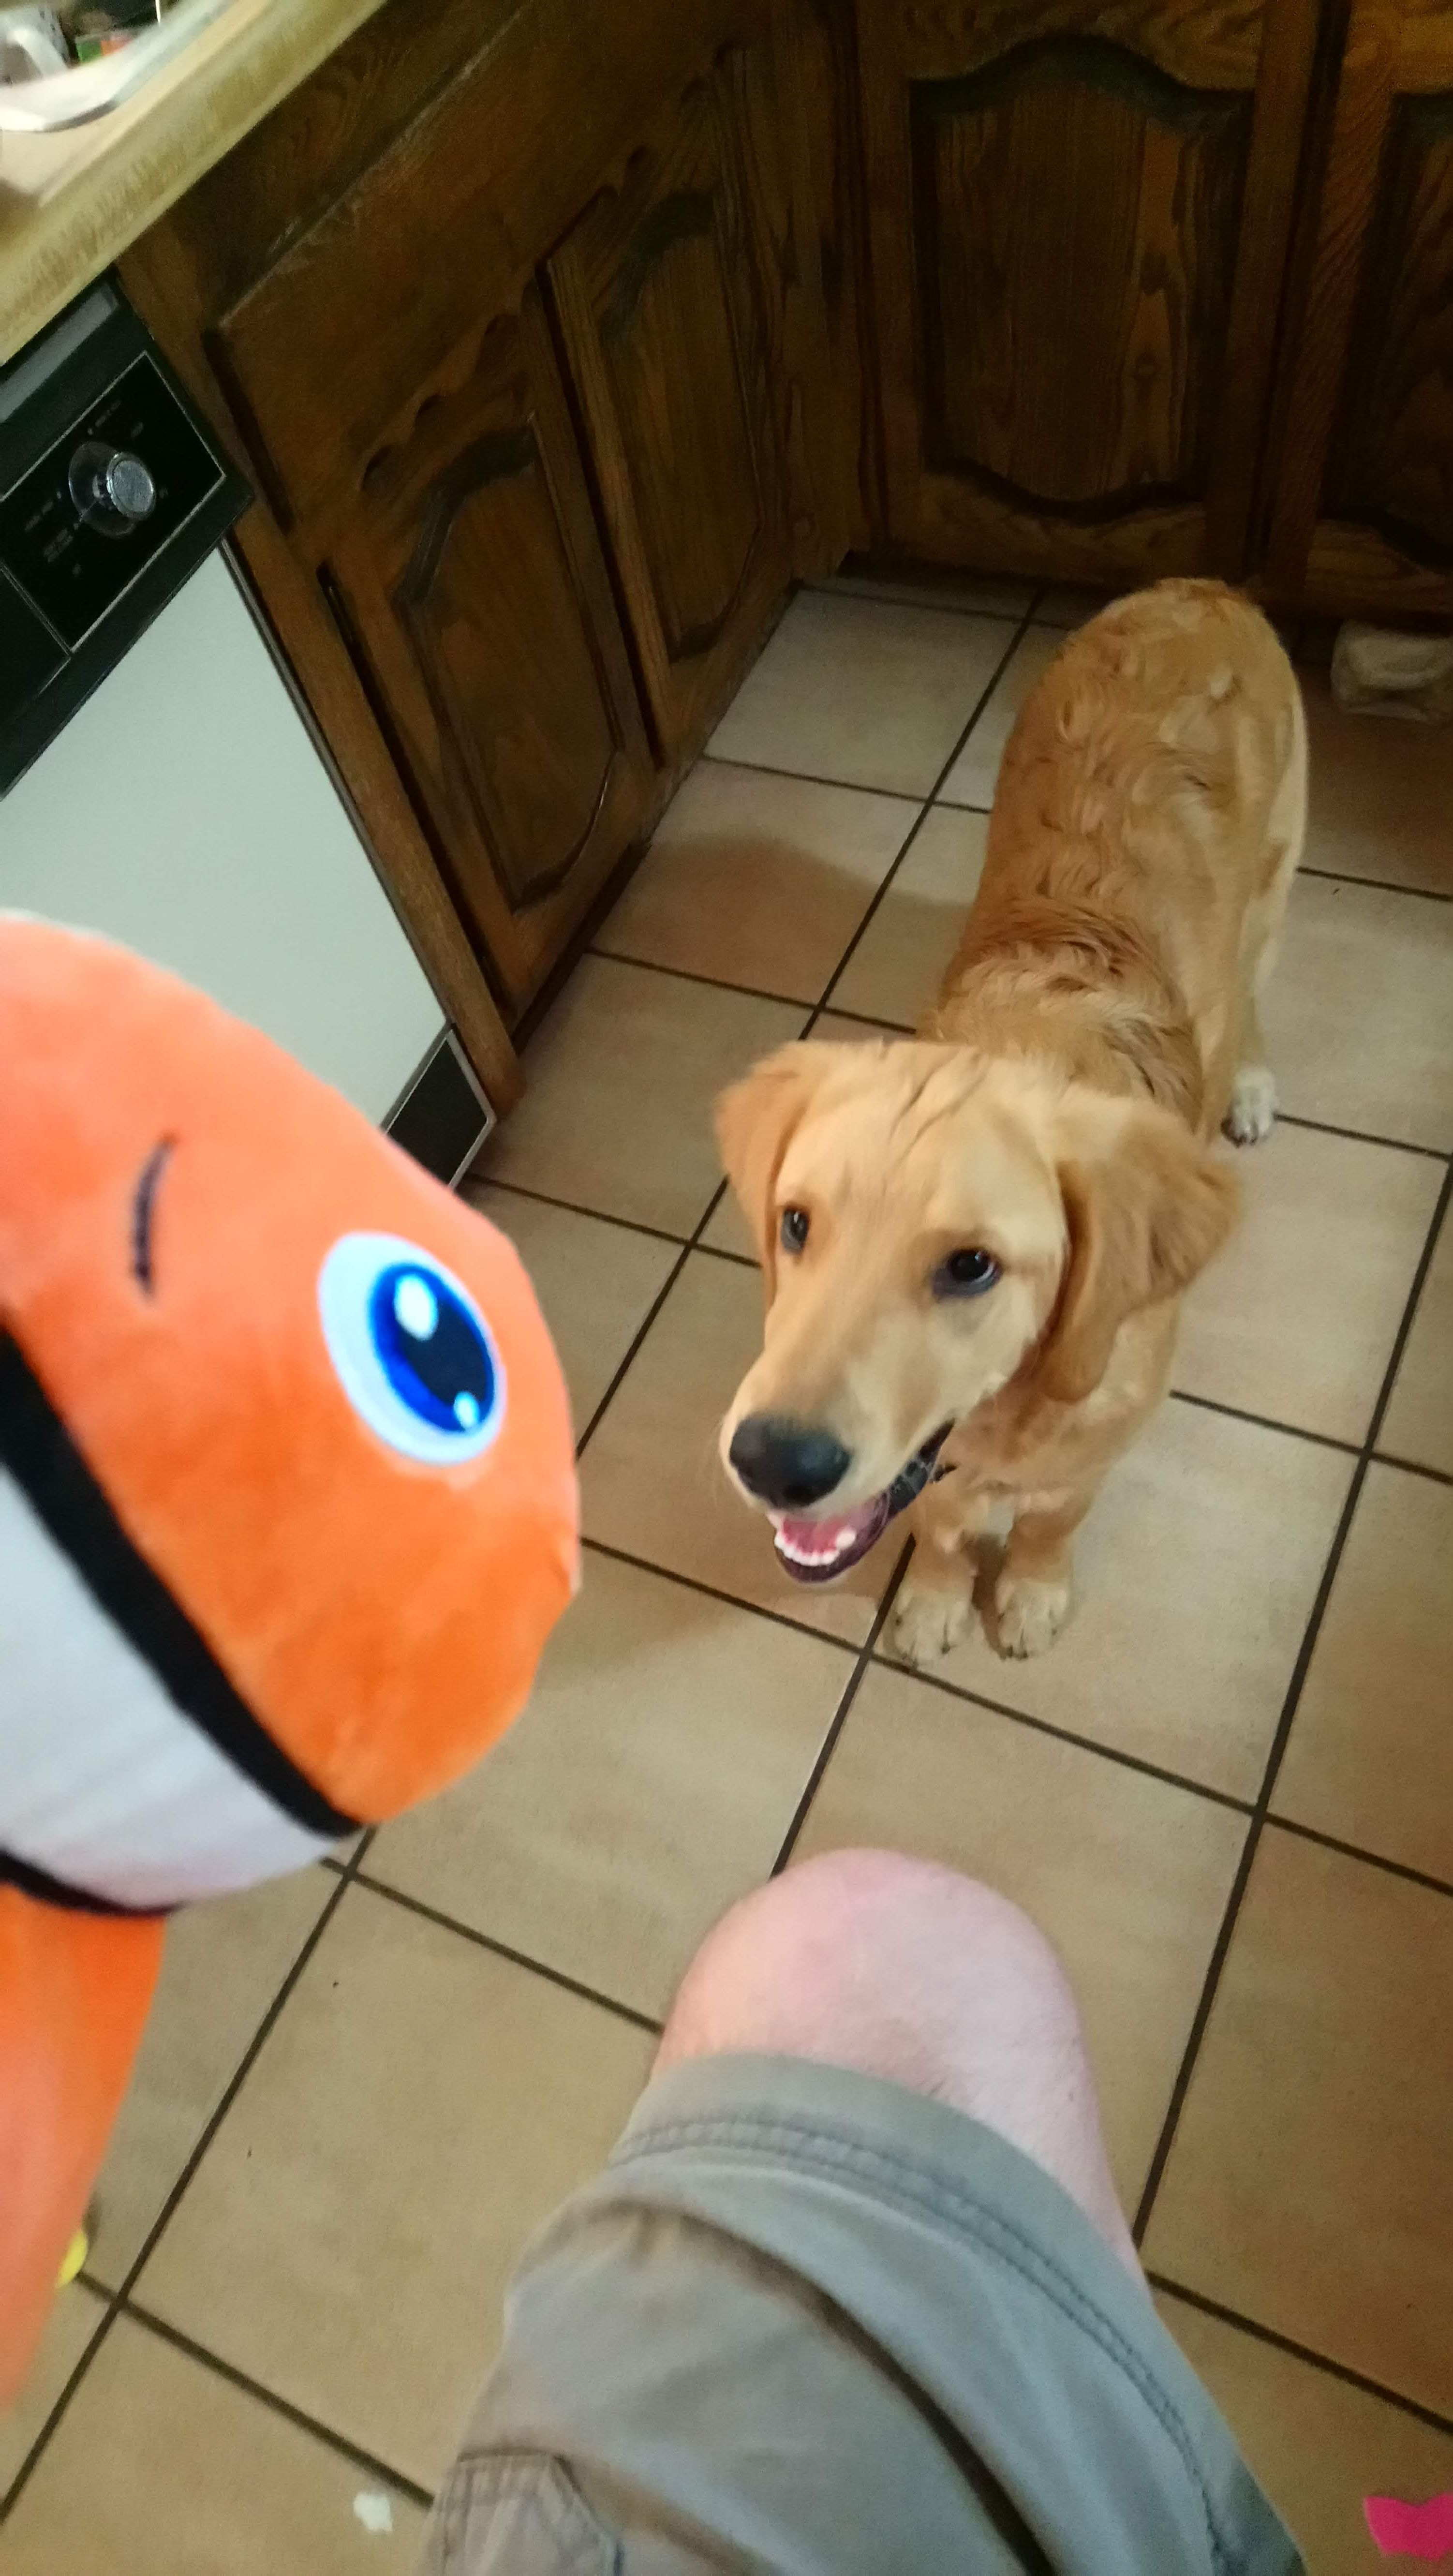 Toys and me images  Daddy got me a new toy Ium on Insta goldenboynelson dog doggie